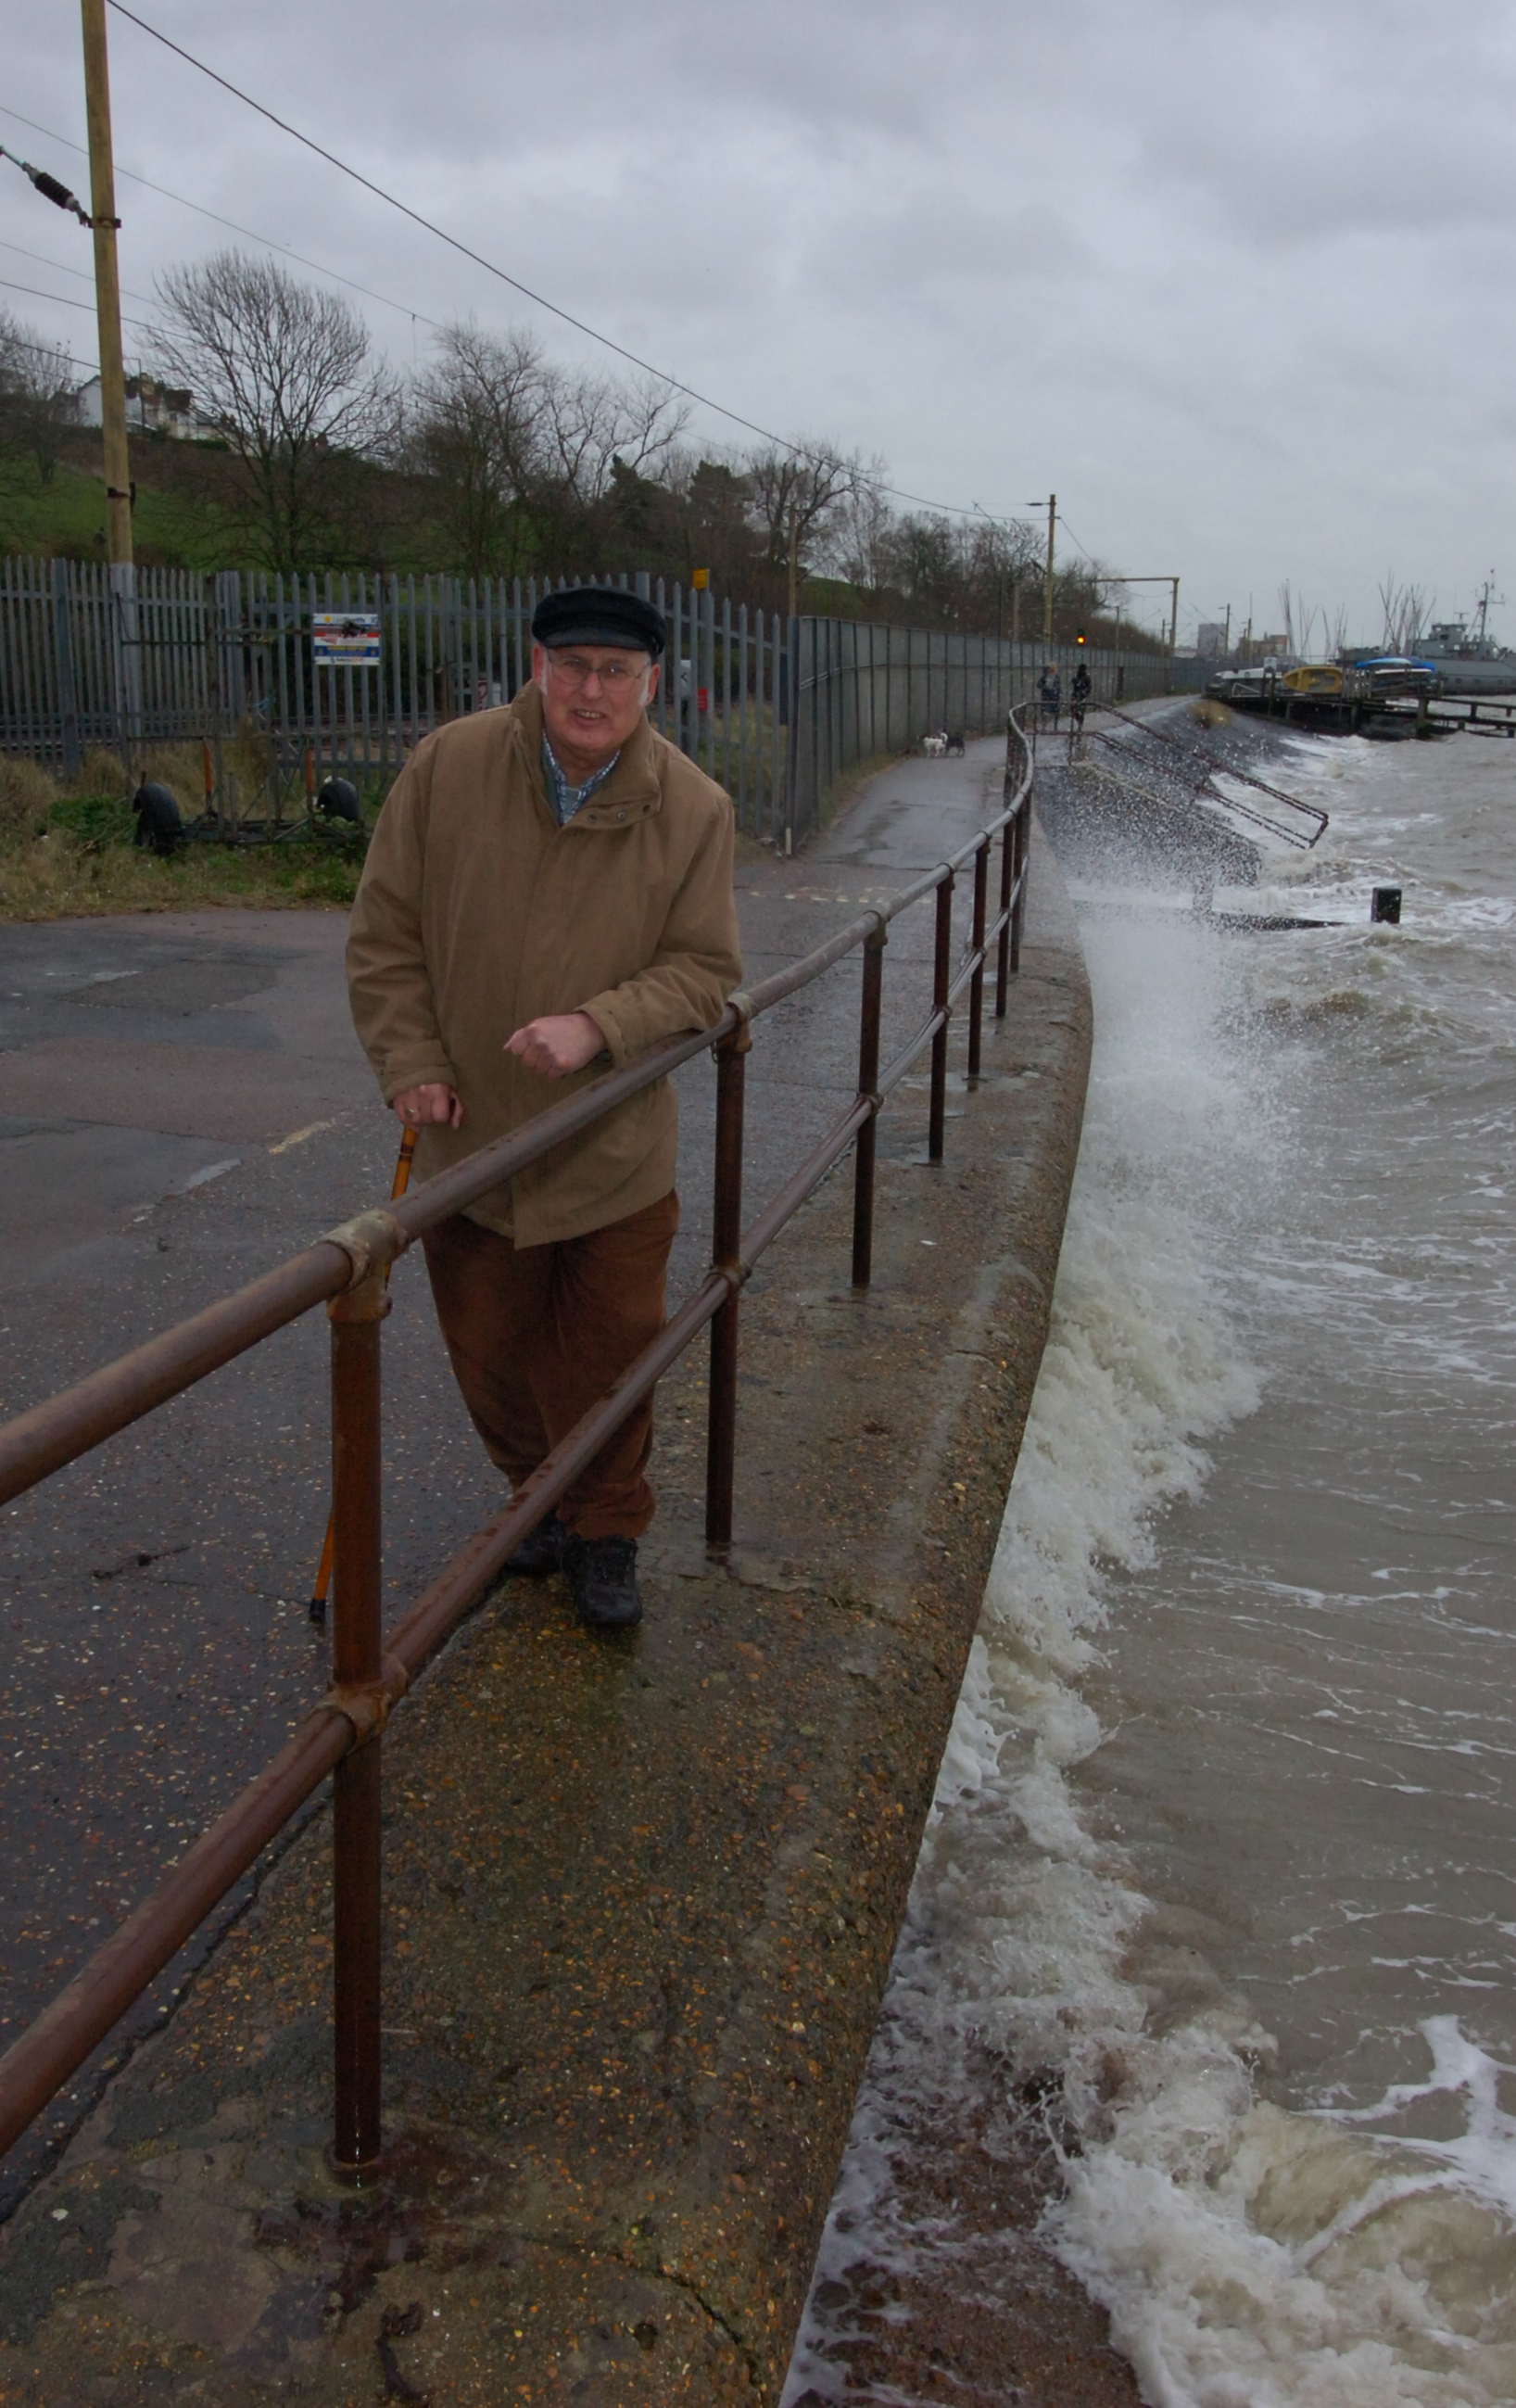 Stormy weather - Peter Wexham fears for the railway in Leigh as weather worsens